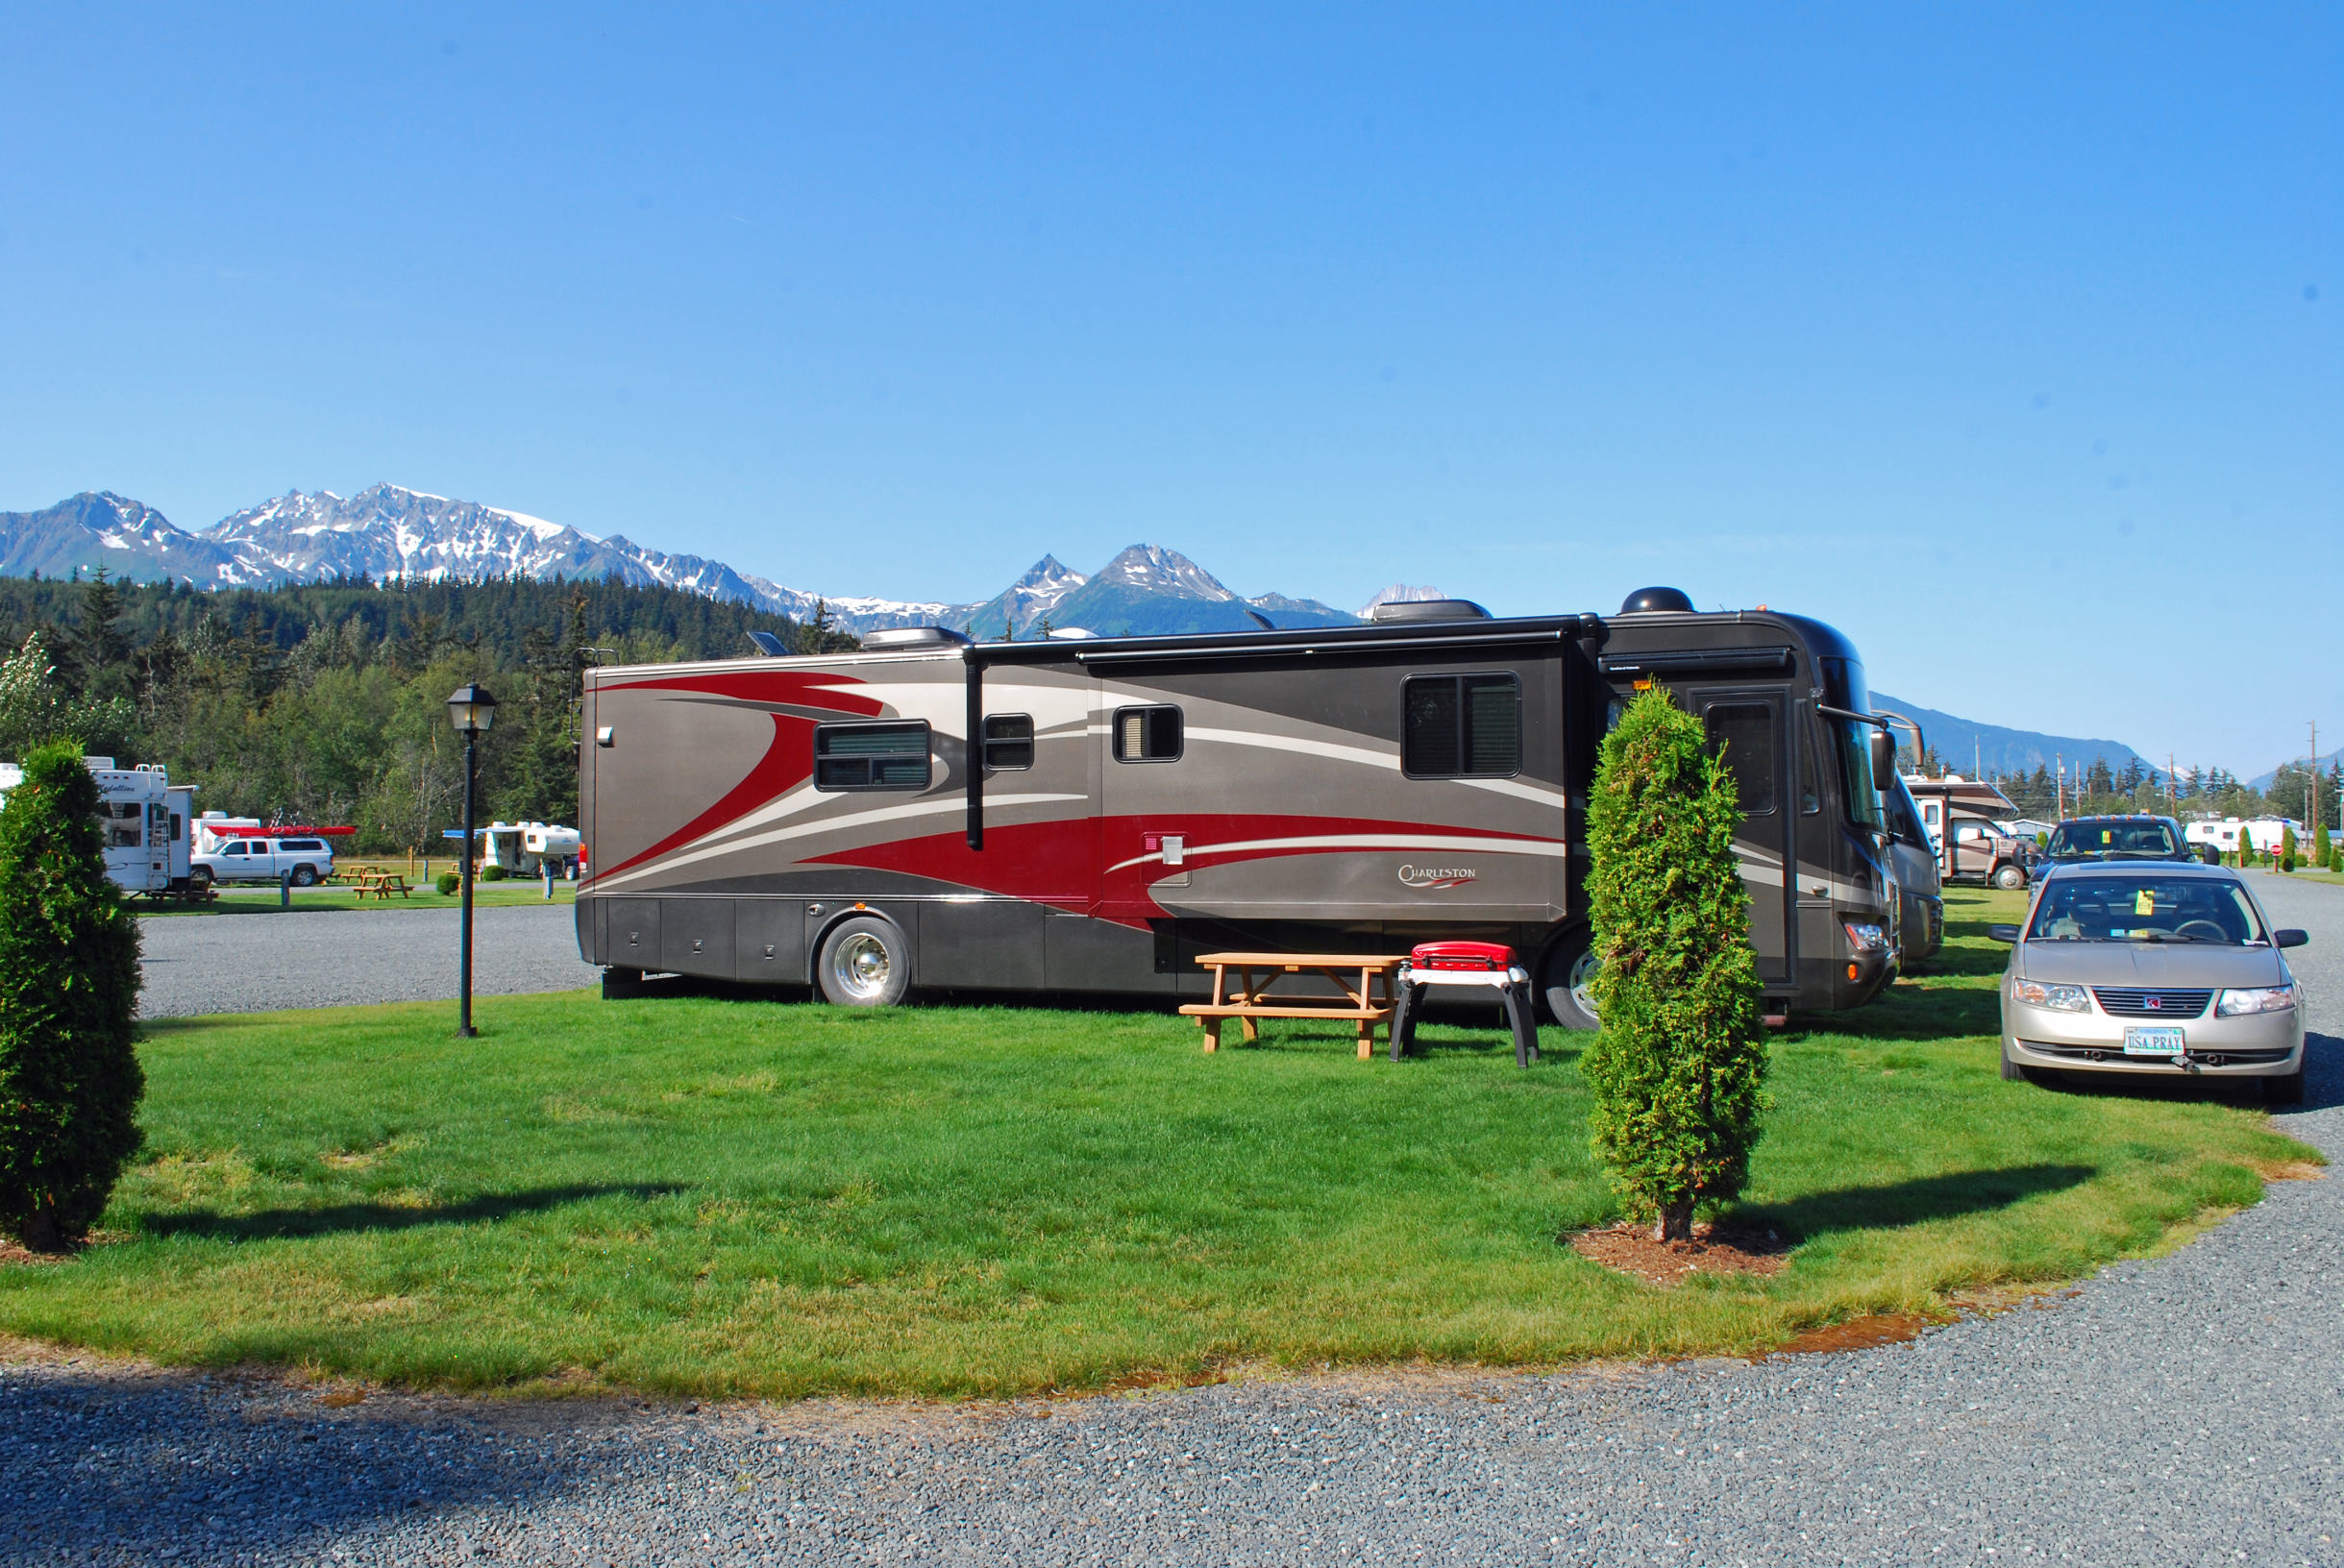 Amenities Haines Hitchup Rv Park 50 Amp Service For Platinum Sites Are Extra Large Pull Thru With Full Hook Ups Cable Tv